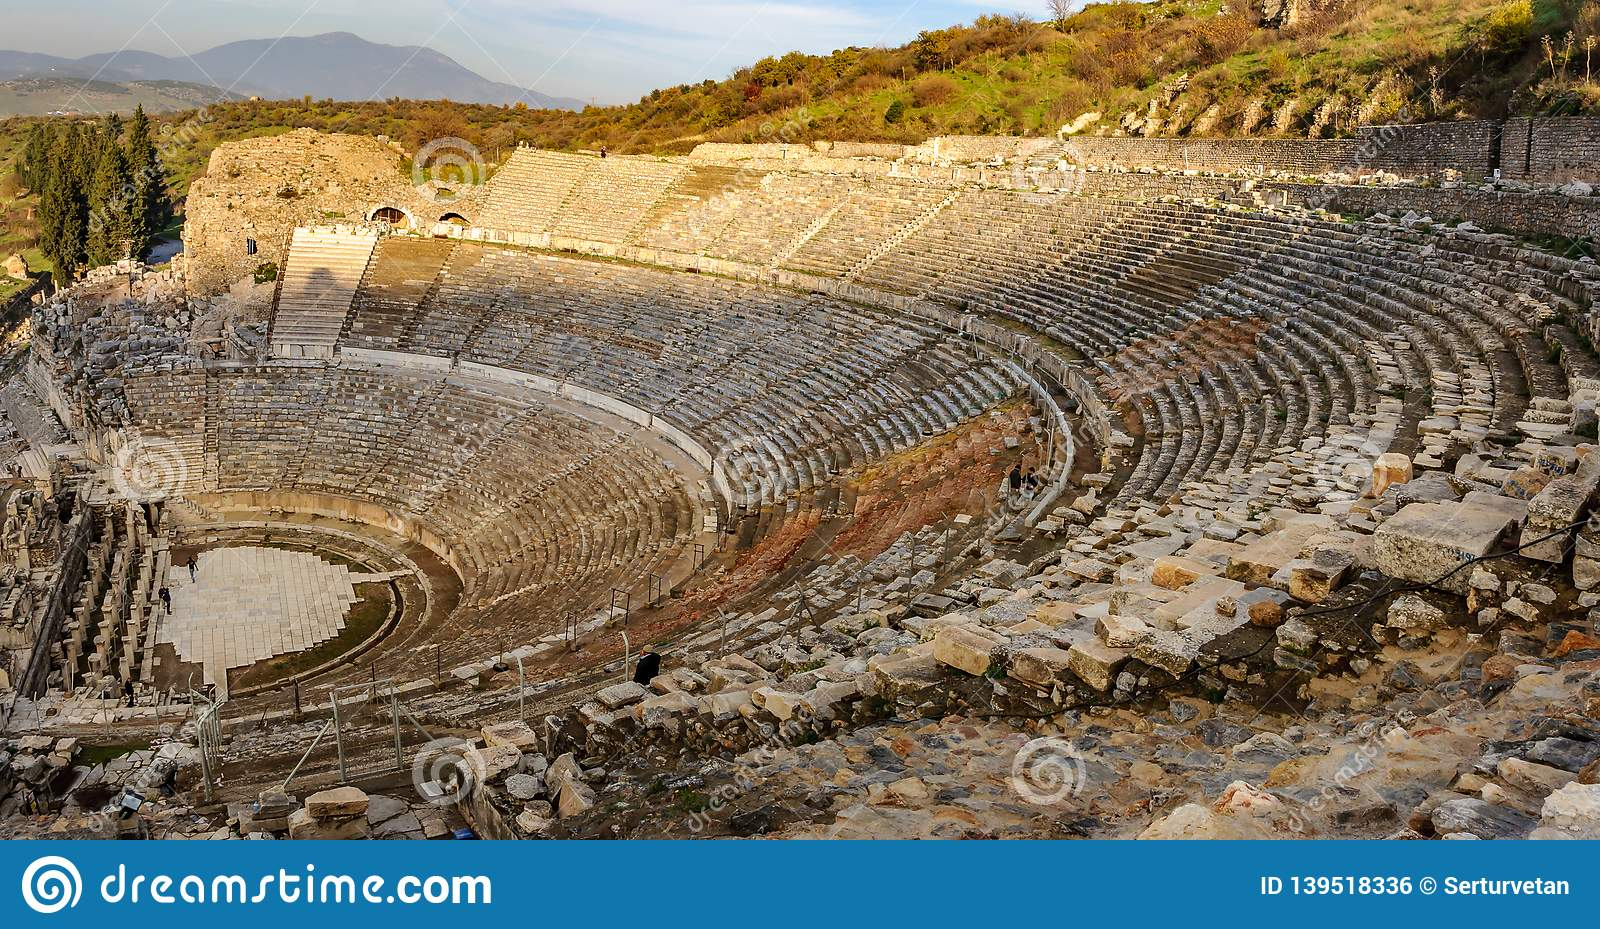 Panoramic view of the ancient city from the top of the Ephesus Theater. The ancient city is listed as a UNESCO World Heritage Site